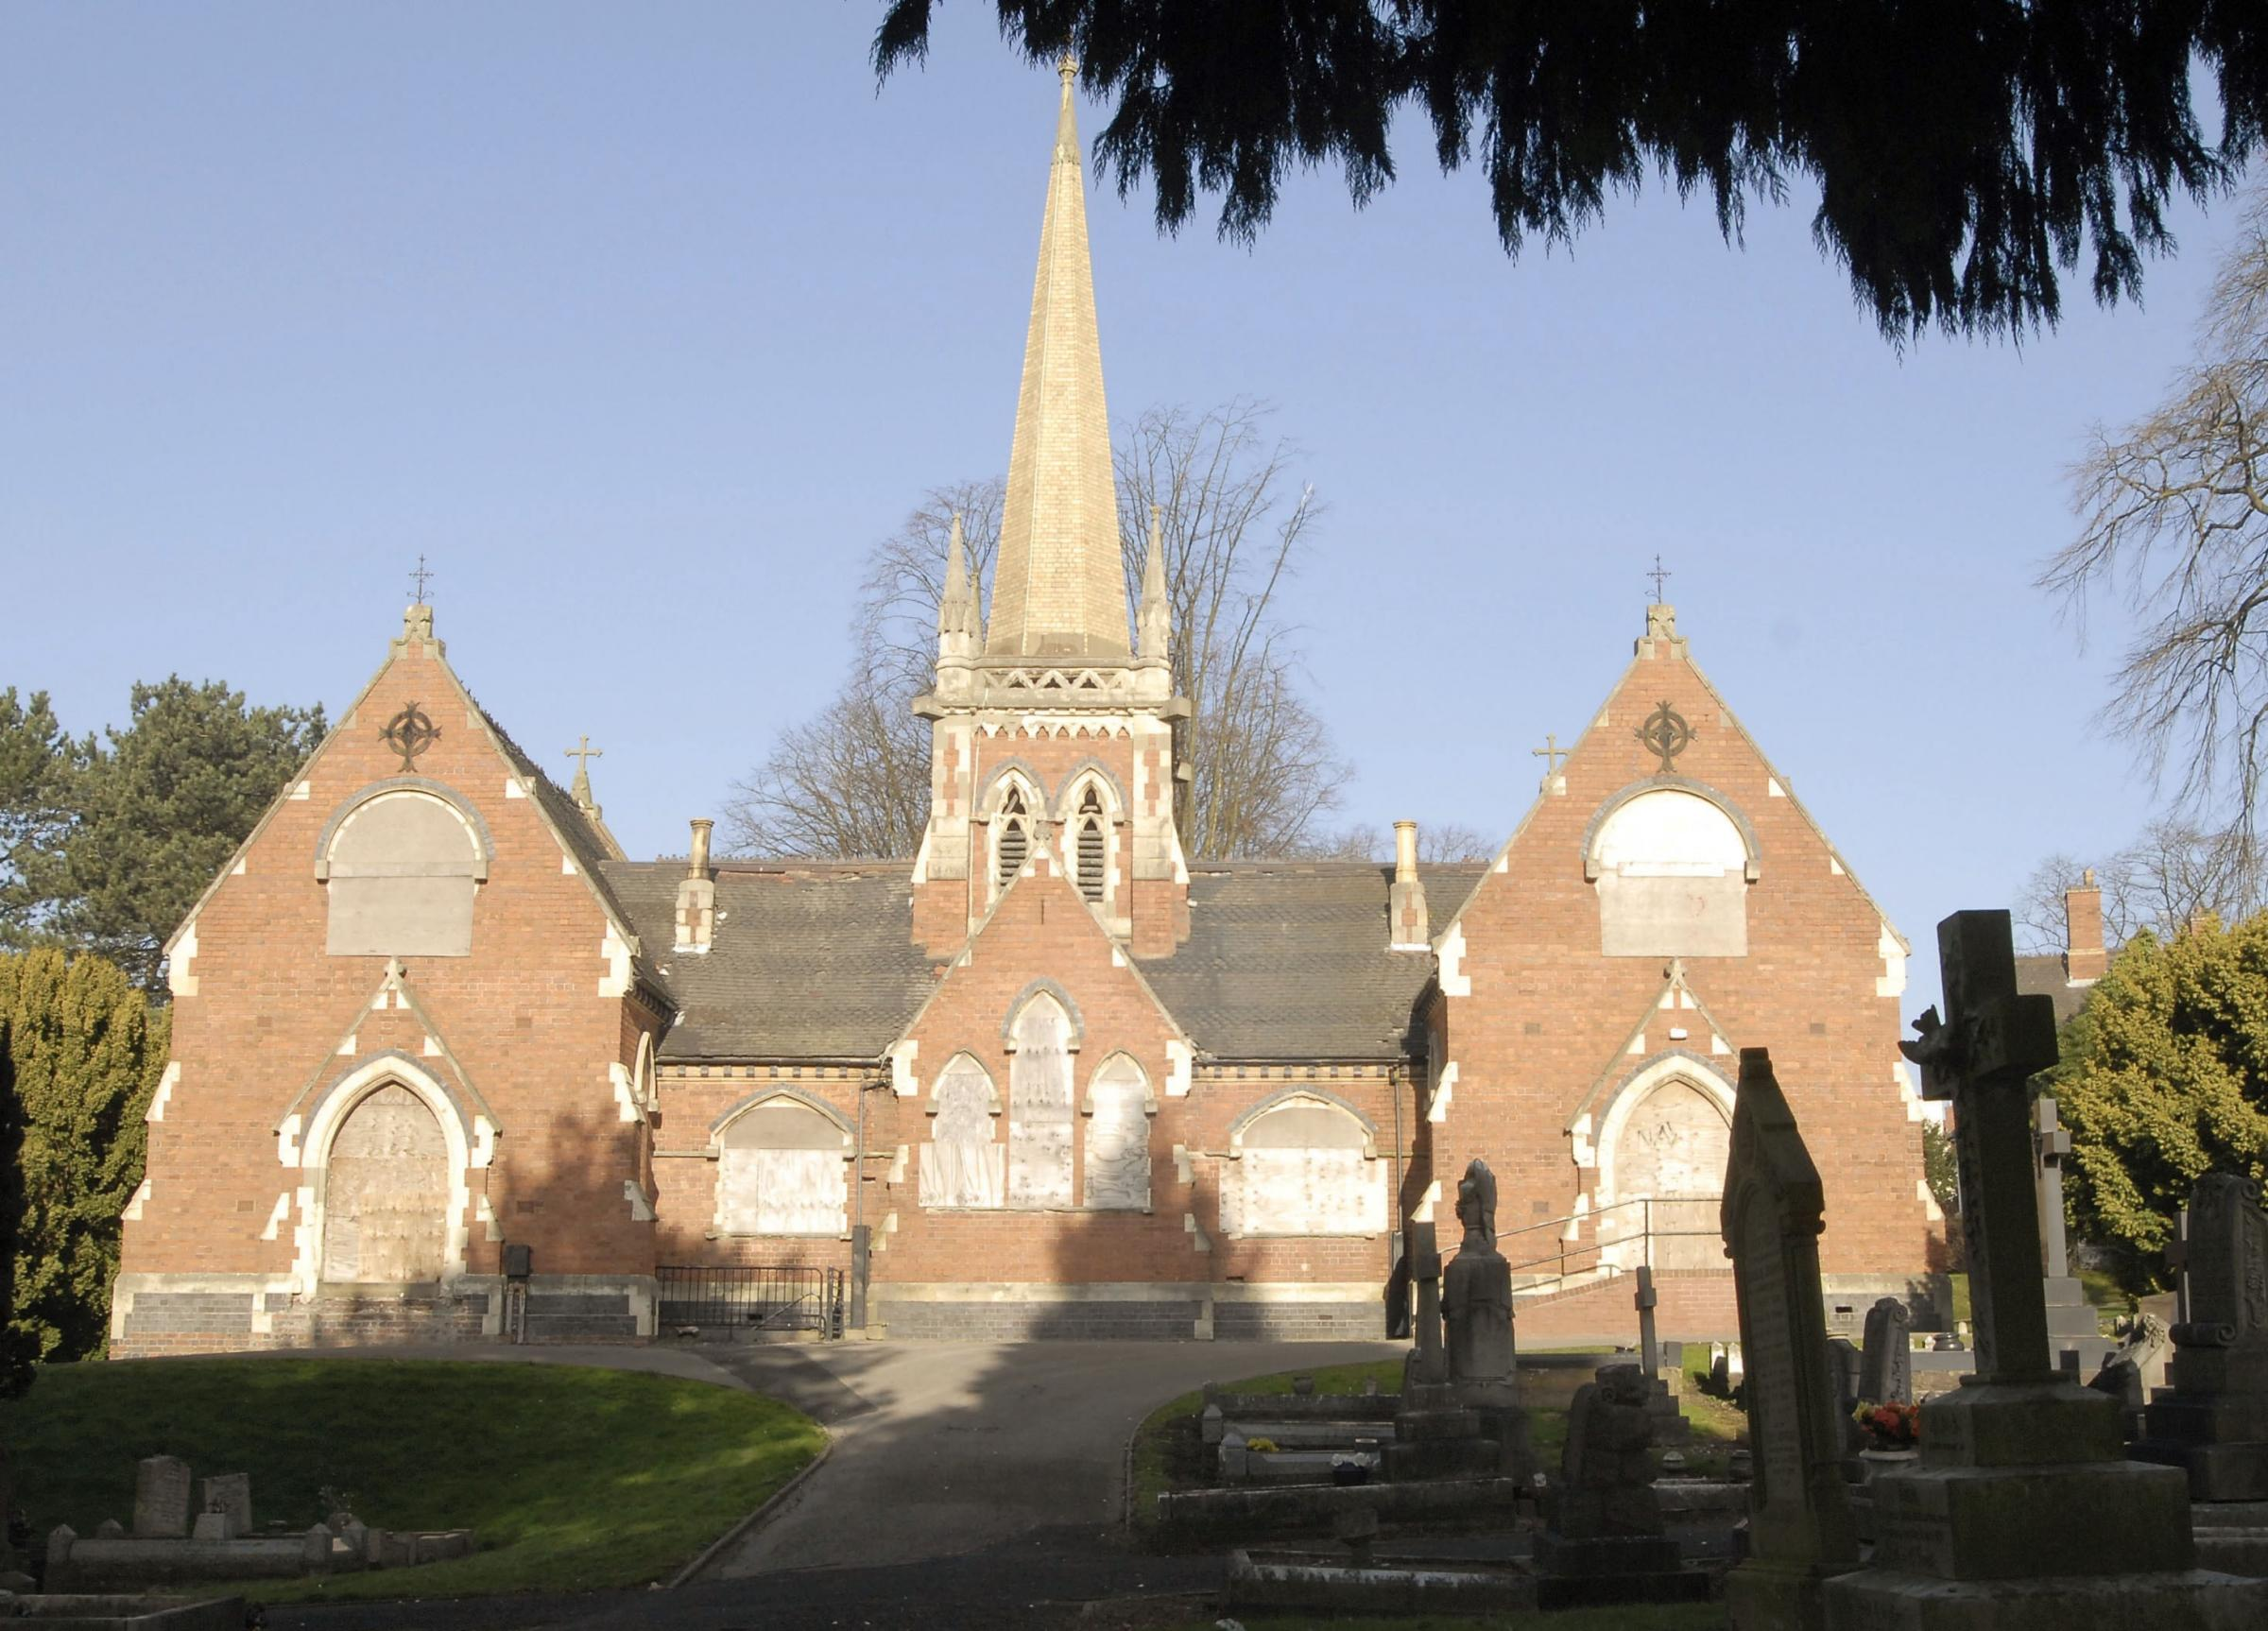 Lye and Wollescote Cemetery Chapels